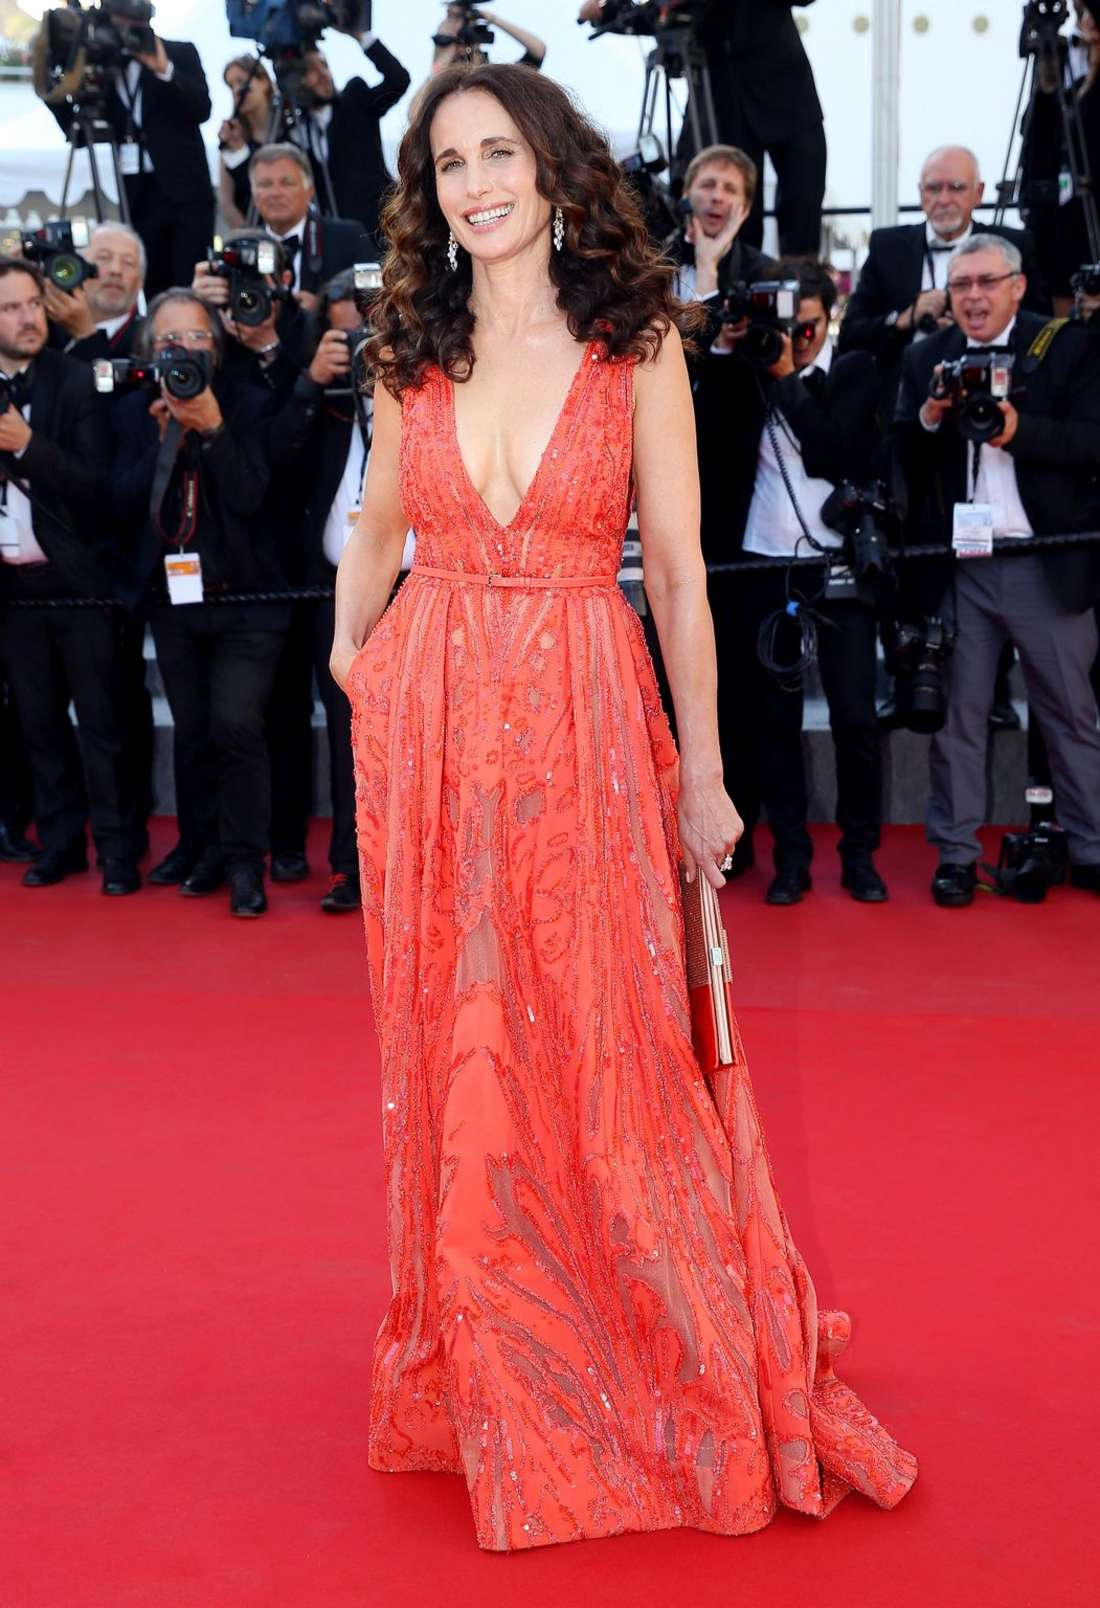 Andie MacDowell Inside Out Premiere in Cannes